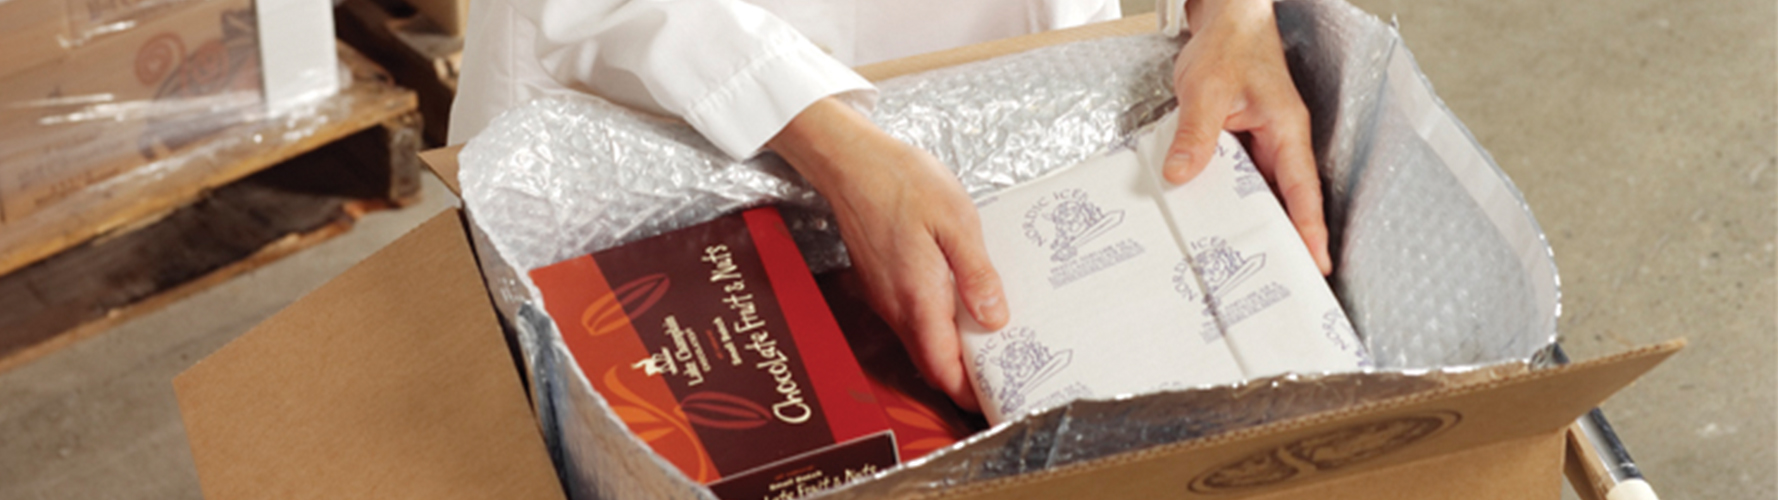 Carefully handpacking each box ensure delivery of only the highest quality chocolate.